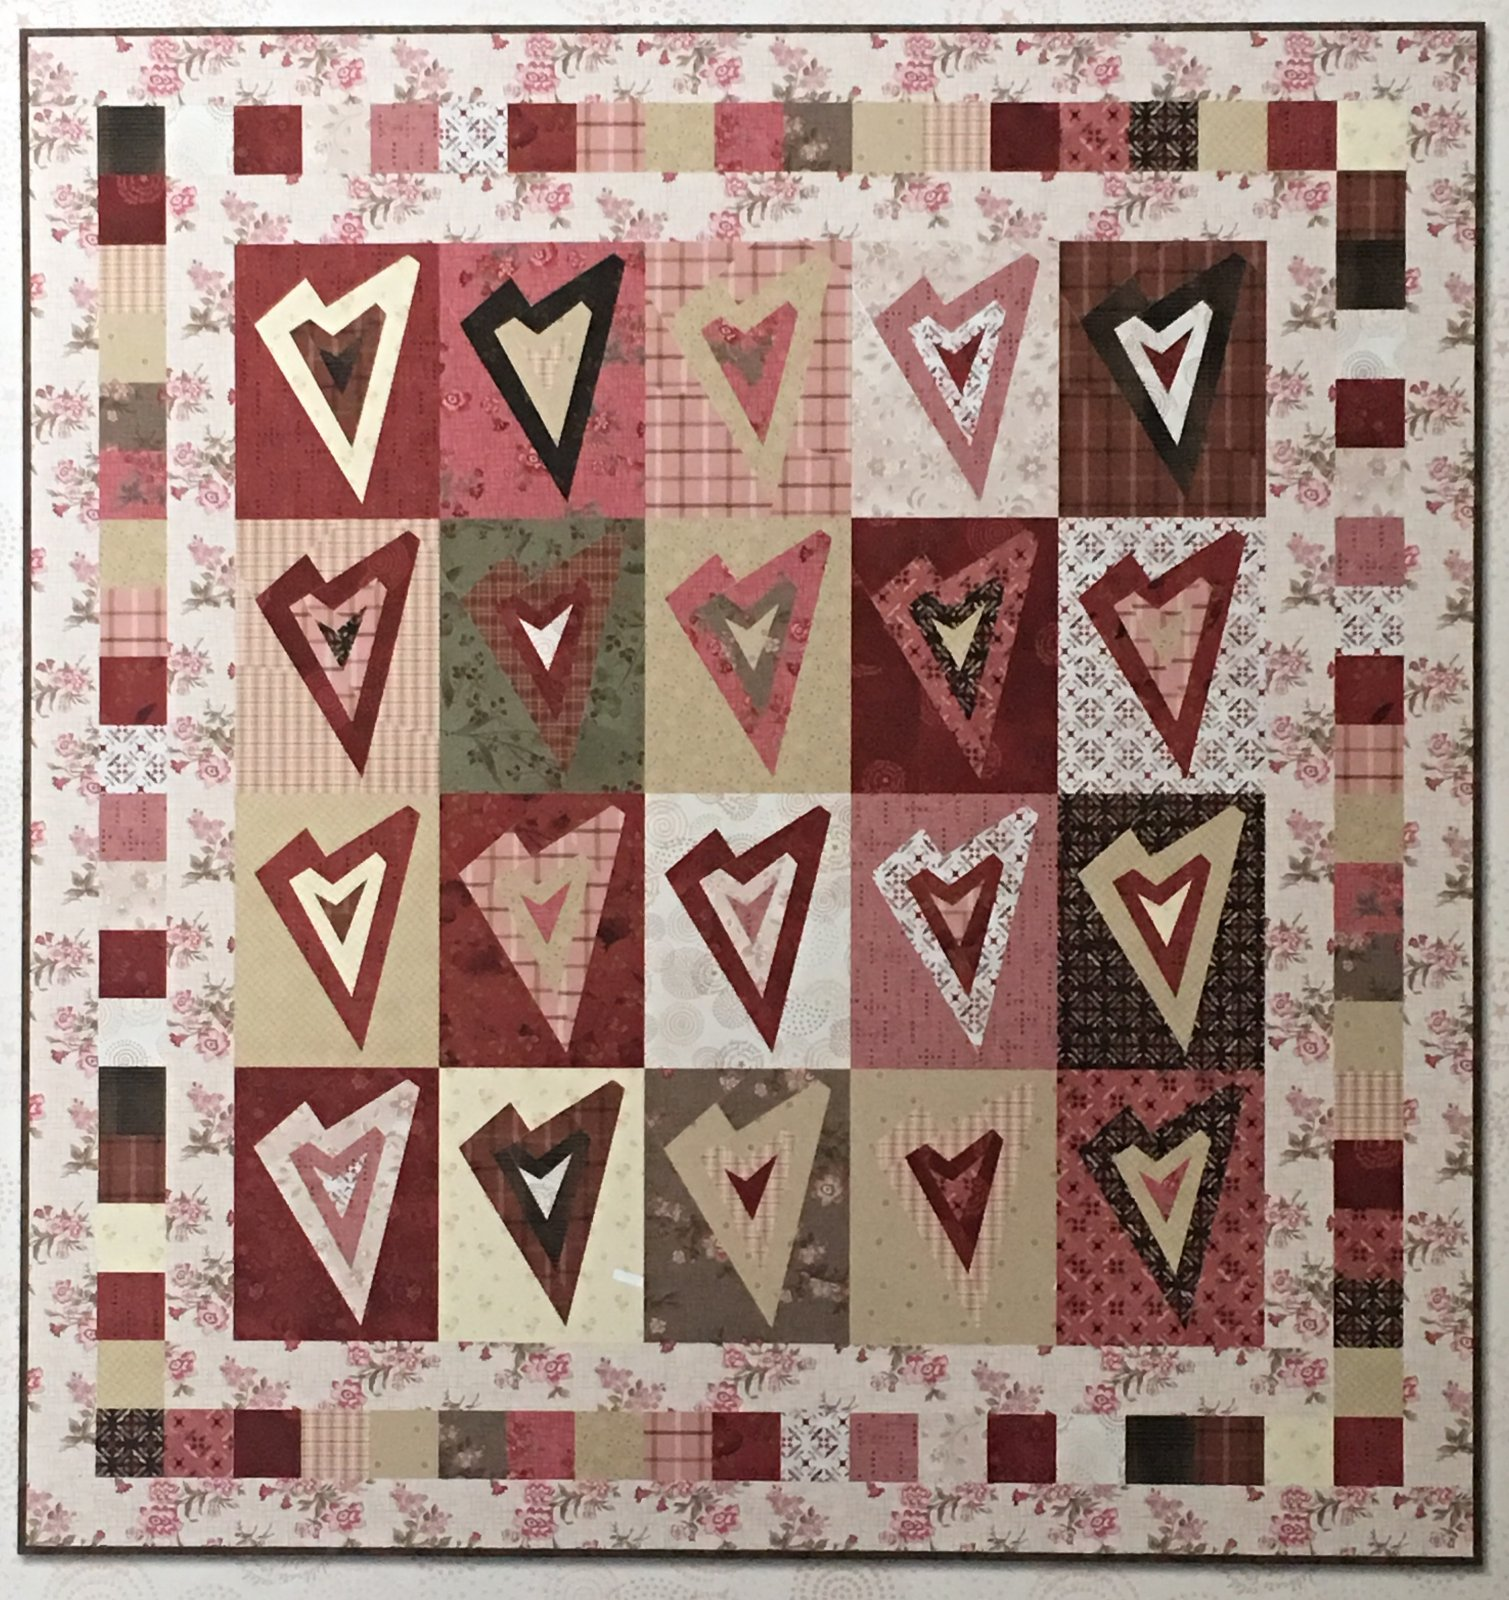 Log Cabin Hearts Kit with pattern- Tickled Pink fabrics